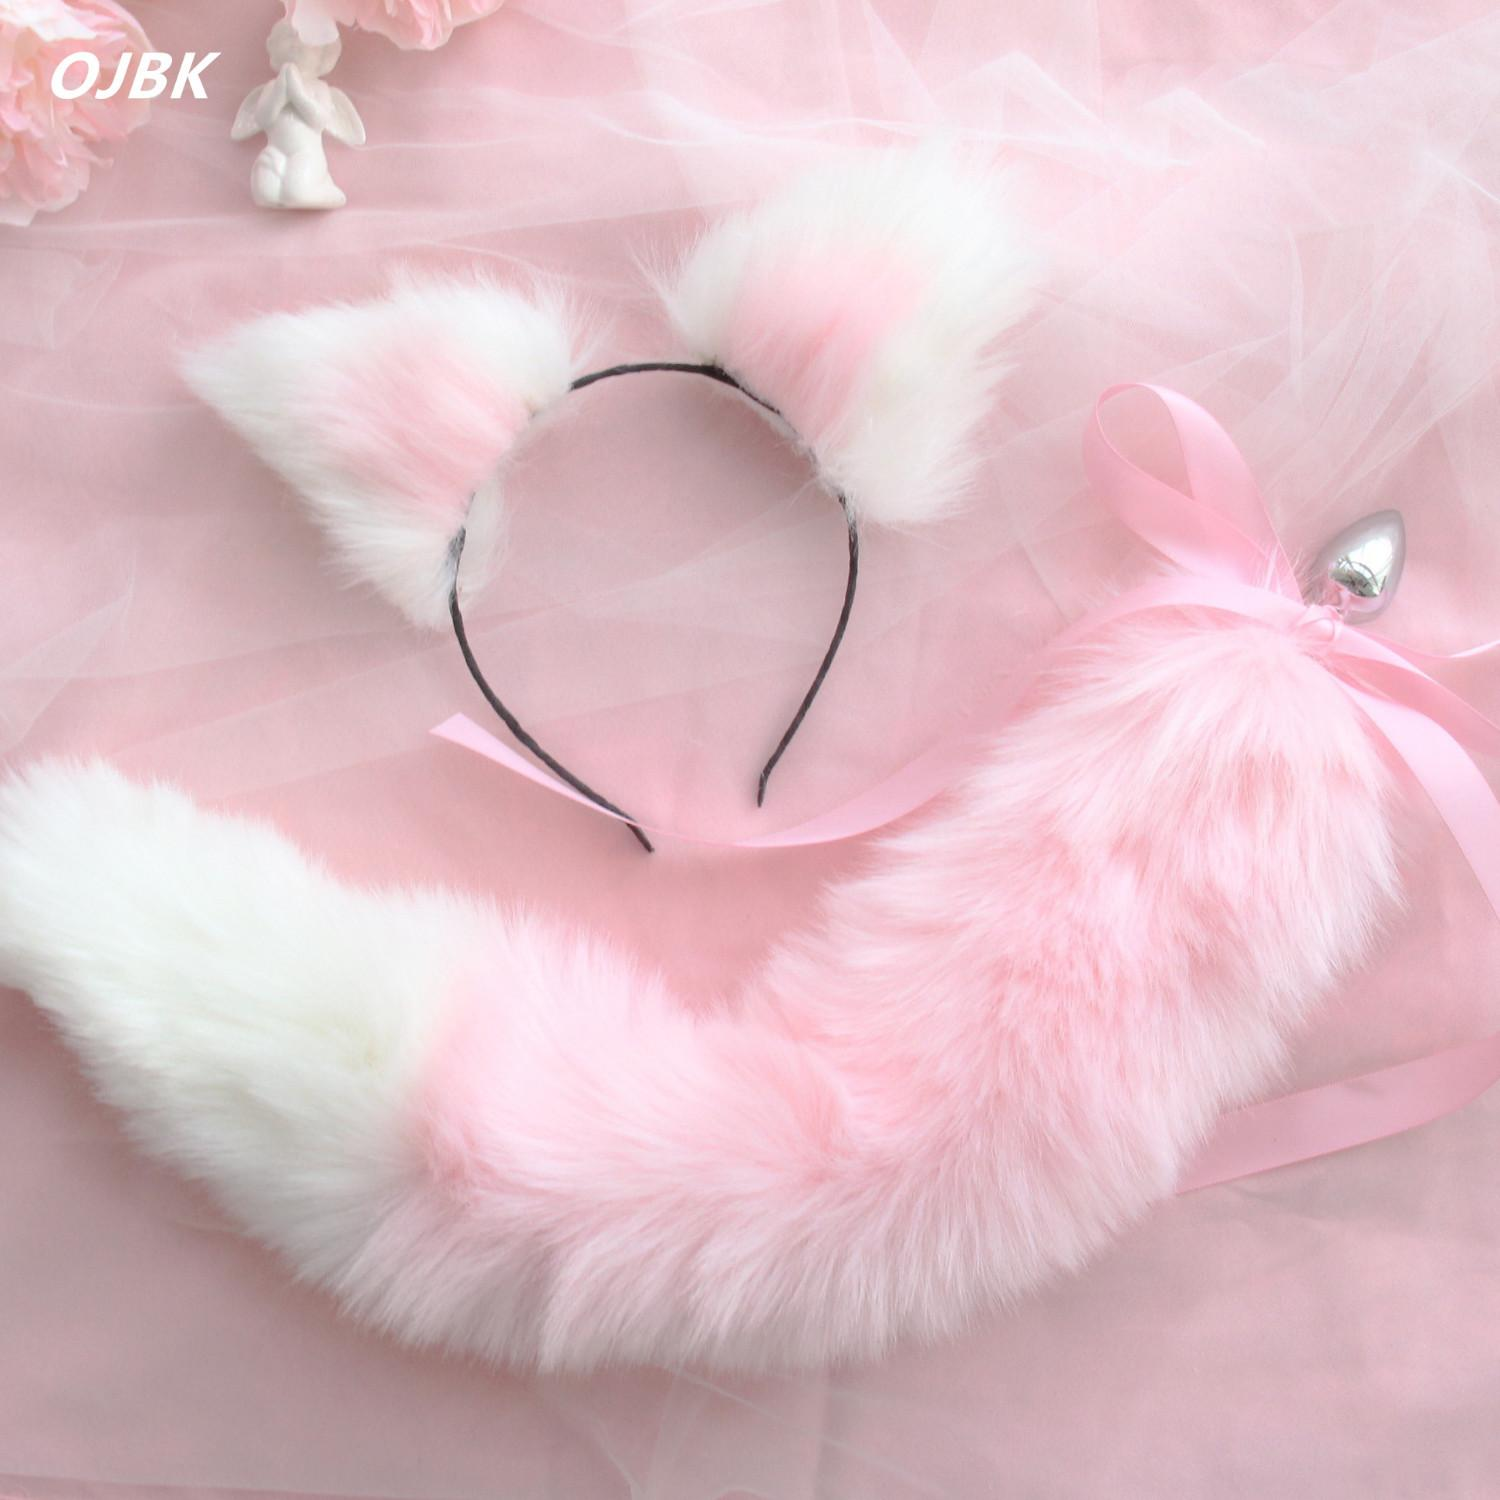 Cute Soft Cat ears Headbands with Fox Tail Bow Metal Butt Anal Plug Erotic Cosplay Accessories Adult Sex Toys for Couples T200630